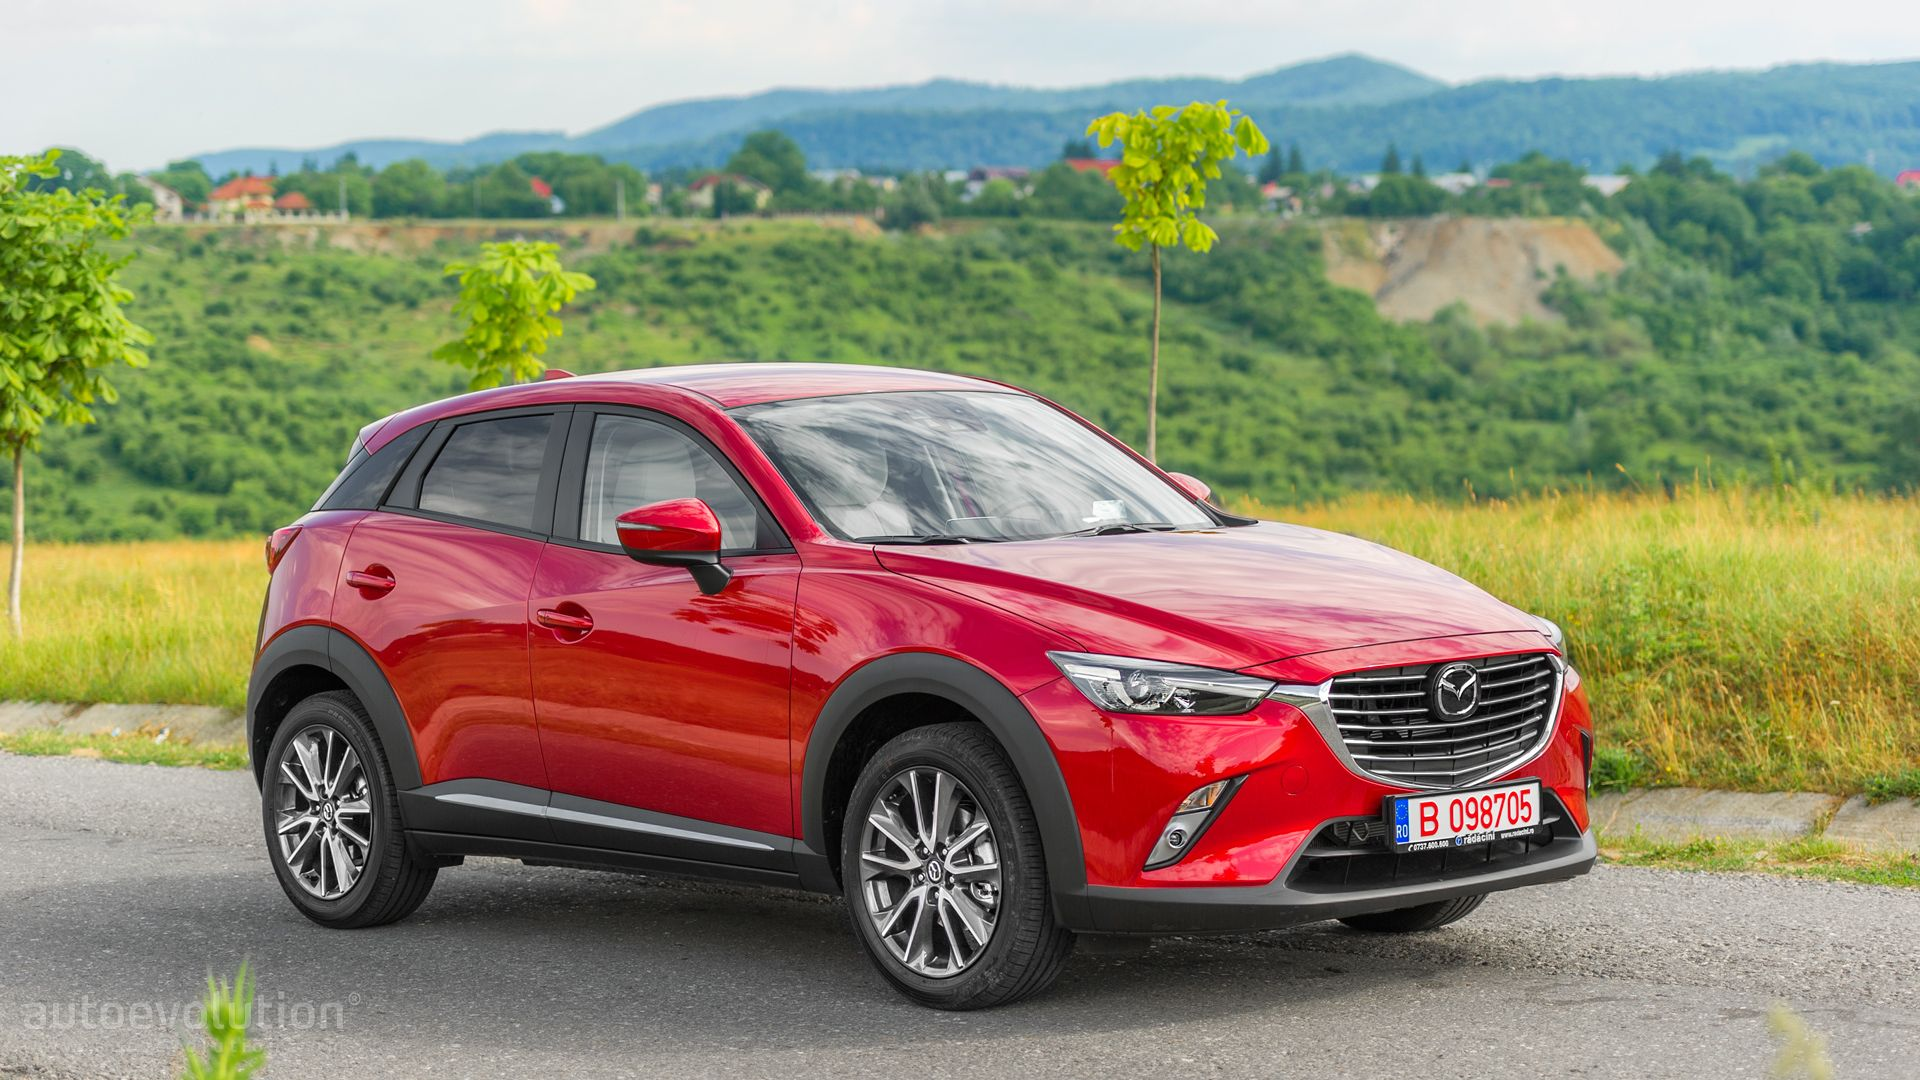 Mazda CX-3 Full hd wallpapers